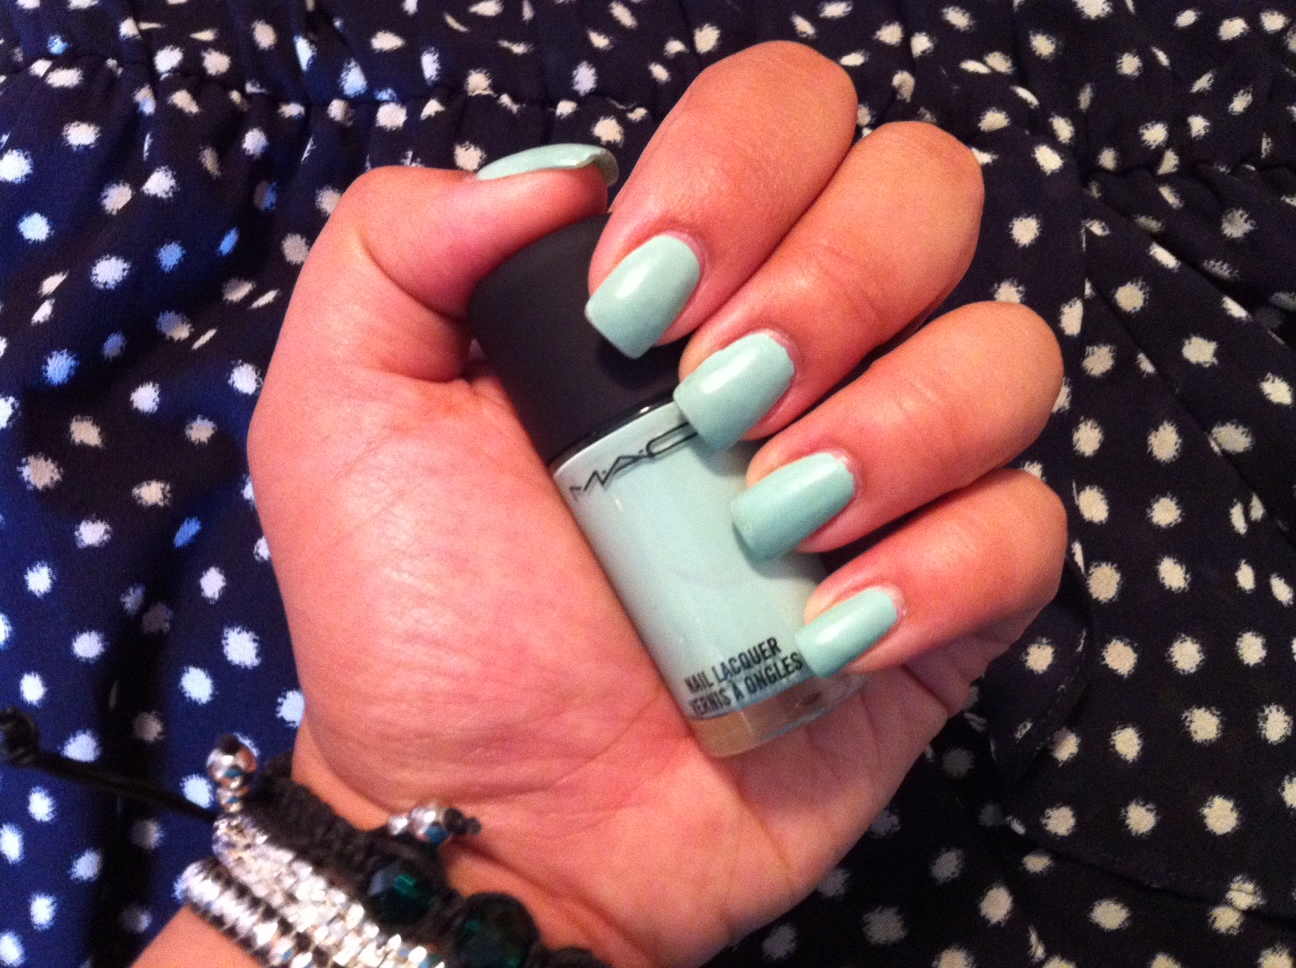 Polished: Mischievous Mint by MAC | Musings of a City Girl